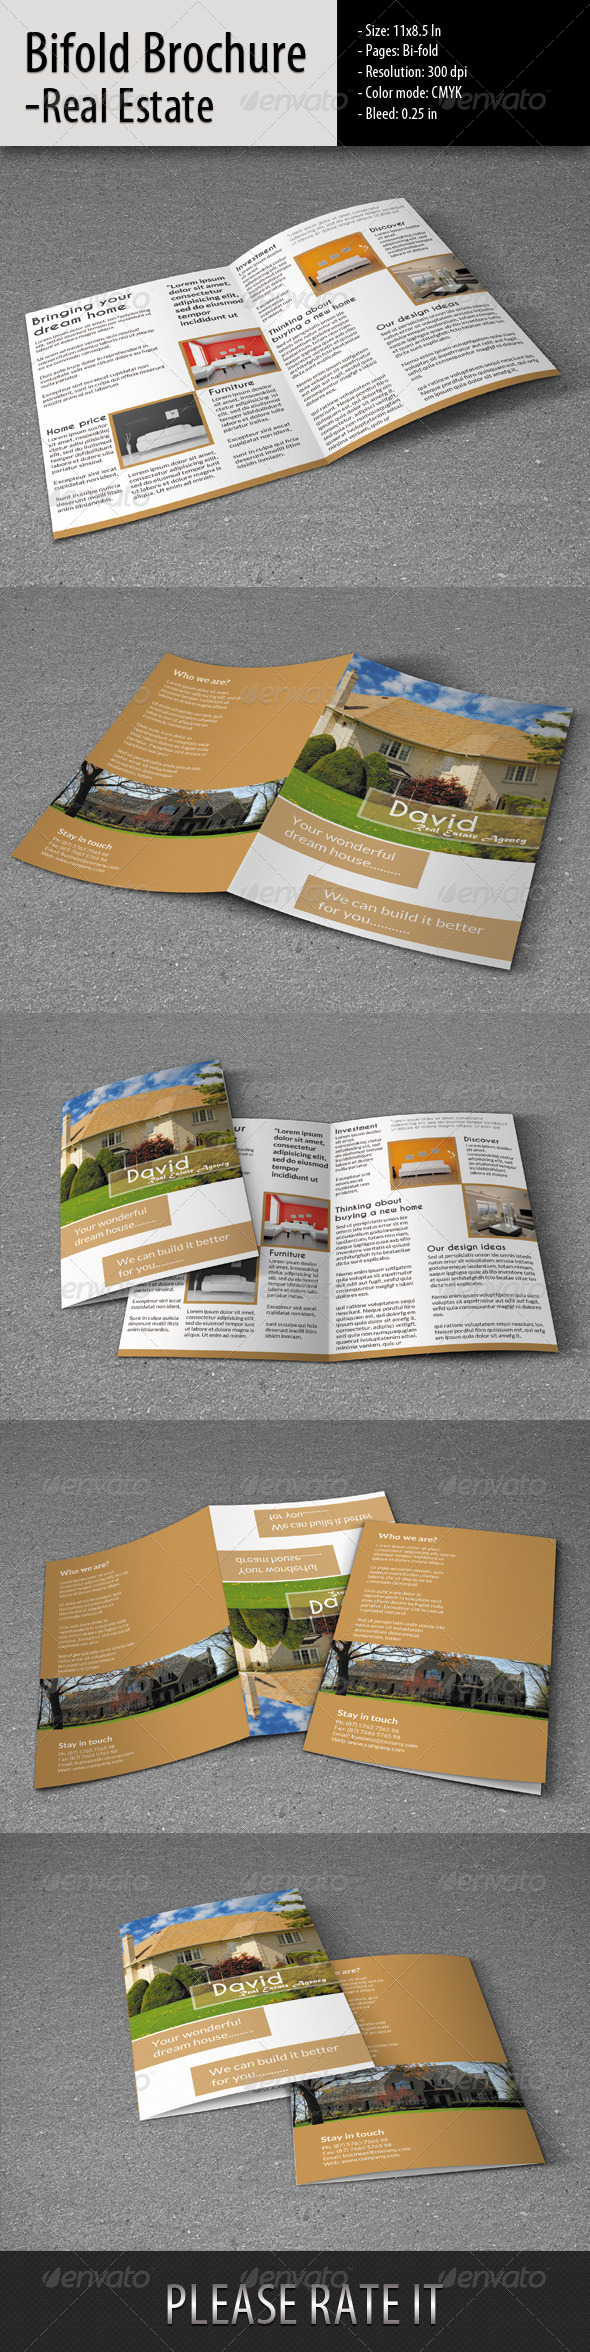 Bifold Brochure for Real Estate - Corporate Brochures